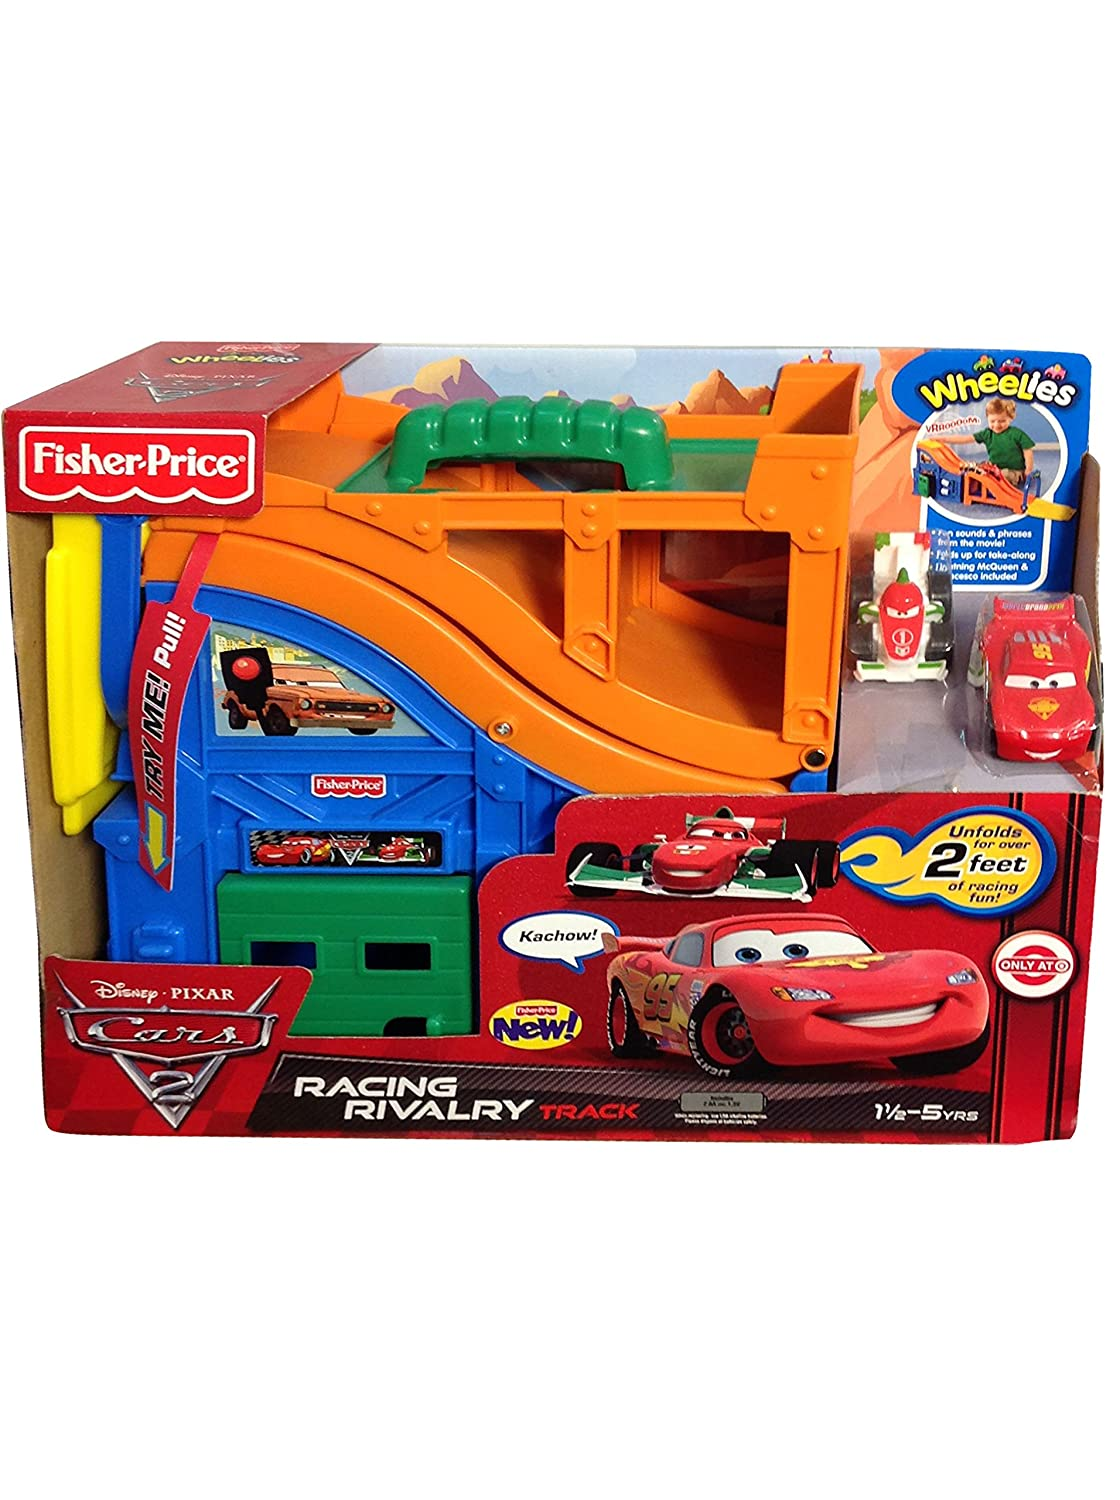 Amazon Com Fisher Price Disney Cars Racing Rivalry Track Playset